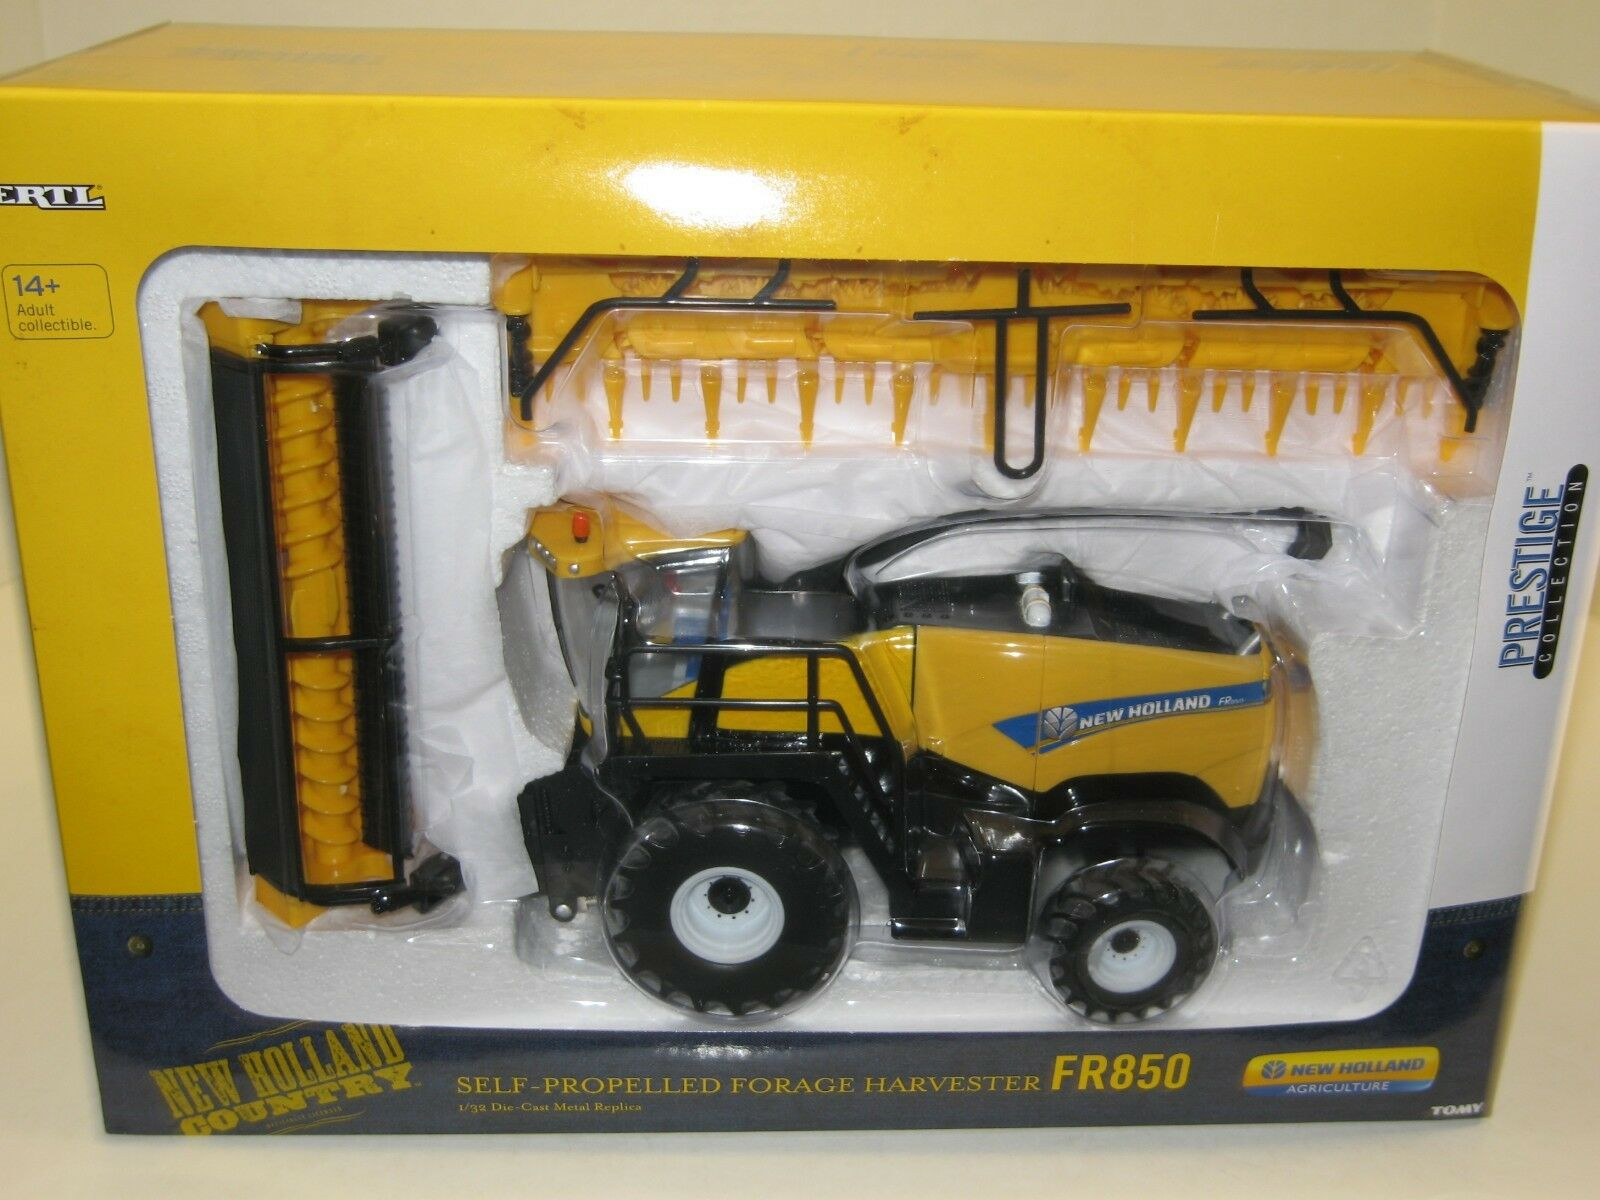 1/32 NEW HOLLAND FR850 SELF-PROPELLED FORAGE HARVESTER PRESTIGE COLL. NIB